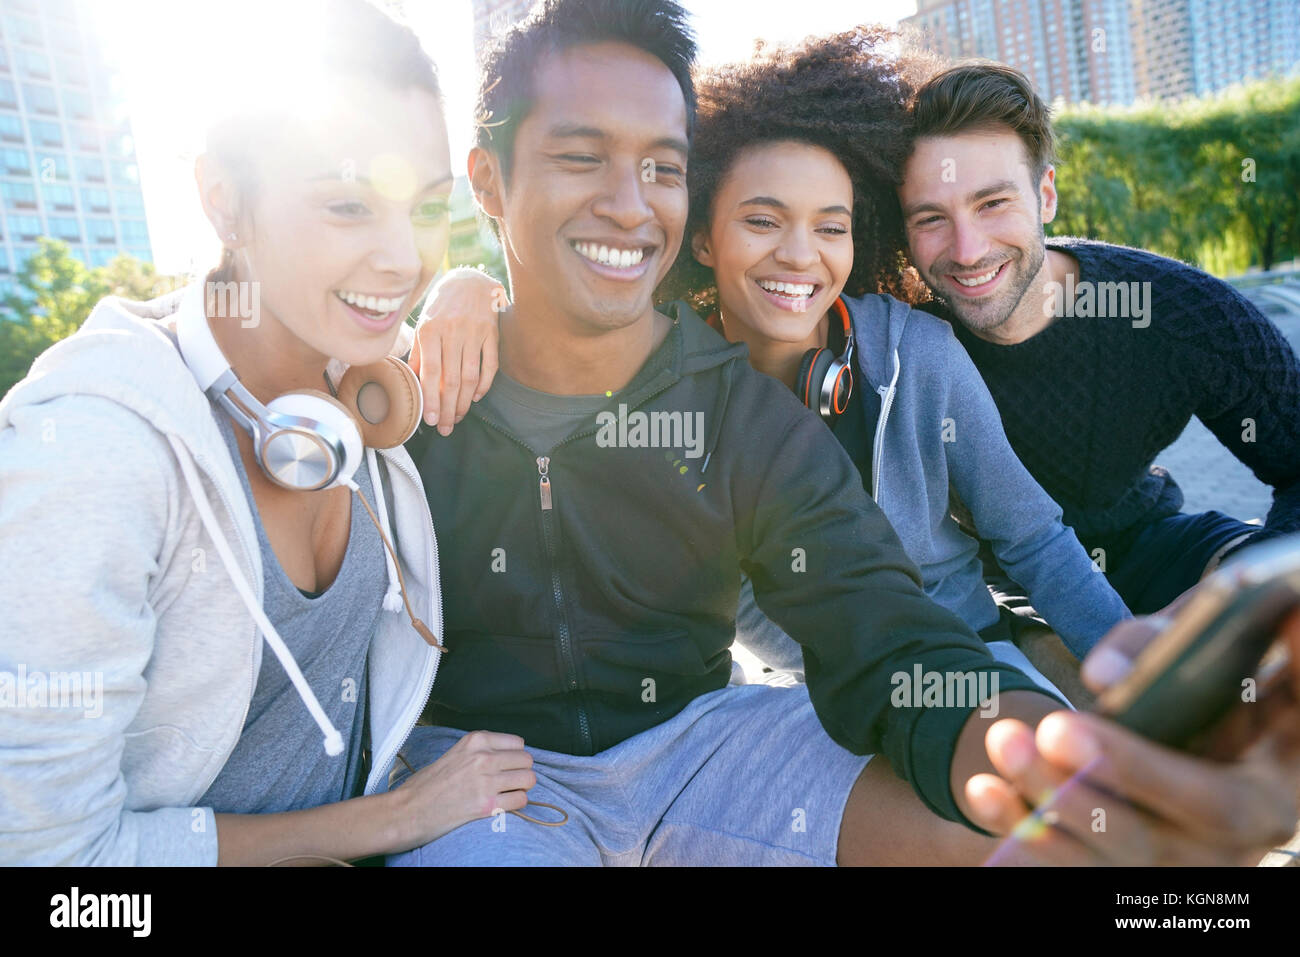 Groupe d'amis en tenue décontractée prendre photo selfies with smartphone Photo Stock